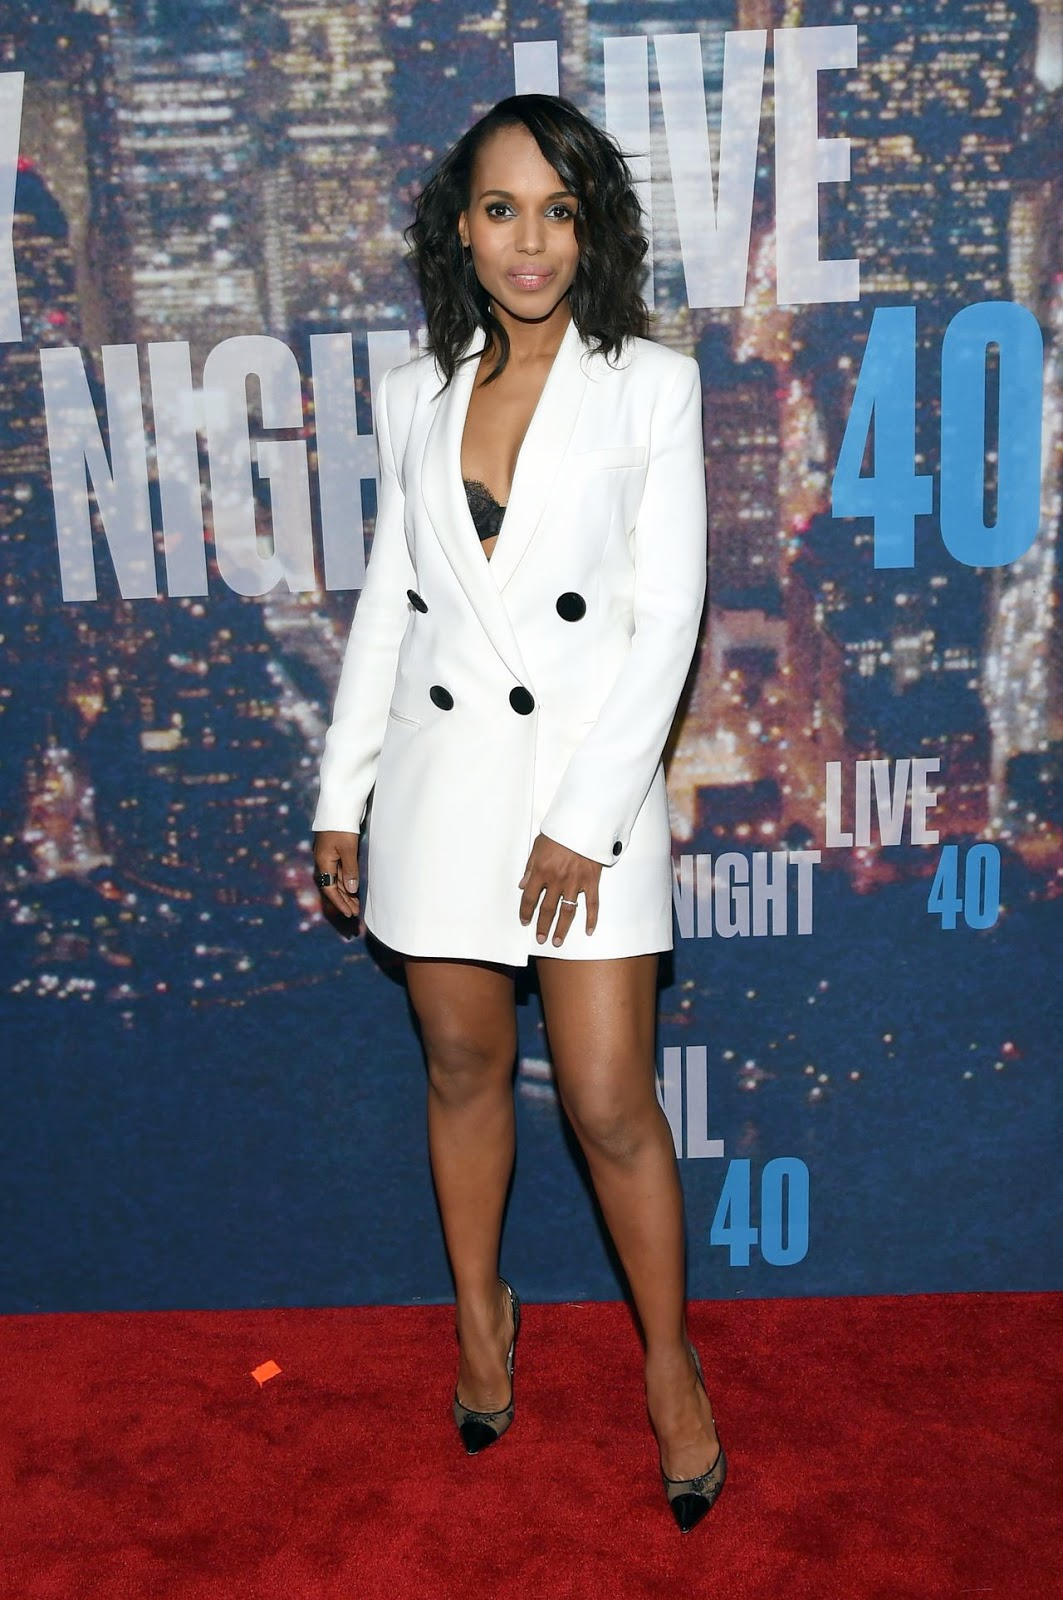 Kerry Washington shows lace bra in tuxedo inspired dress at the SNL 40th Anniversary Celebration in NY